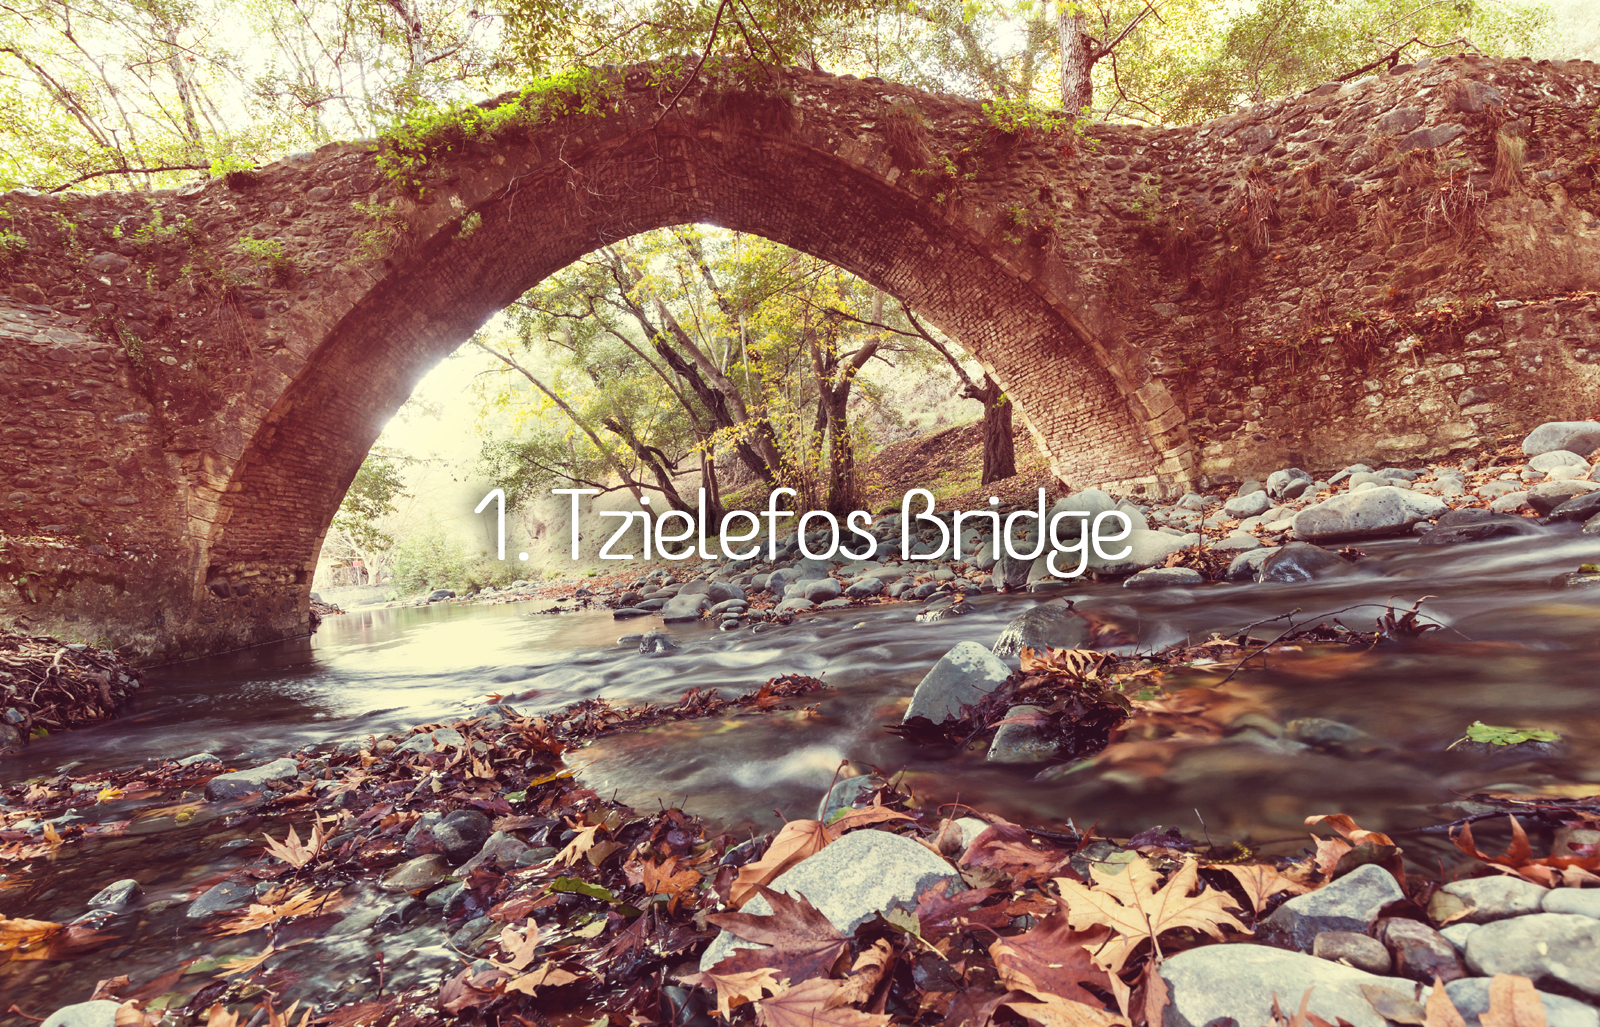 Tzielefos Bridge 2